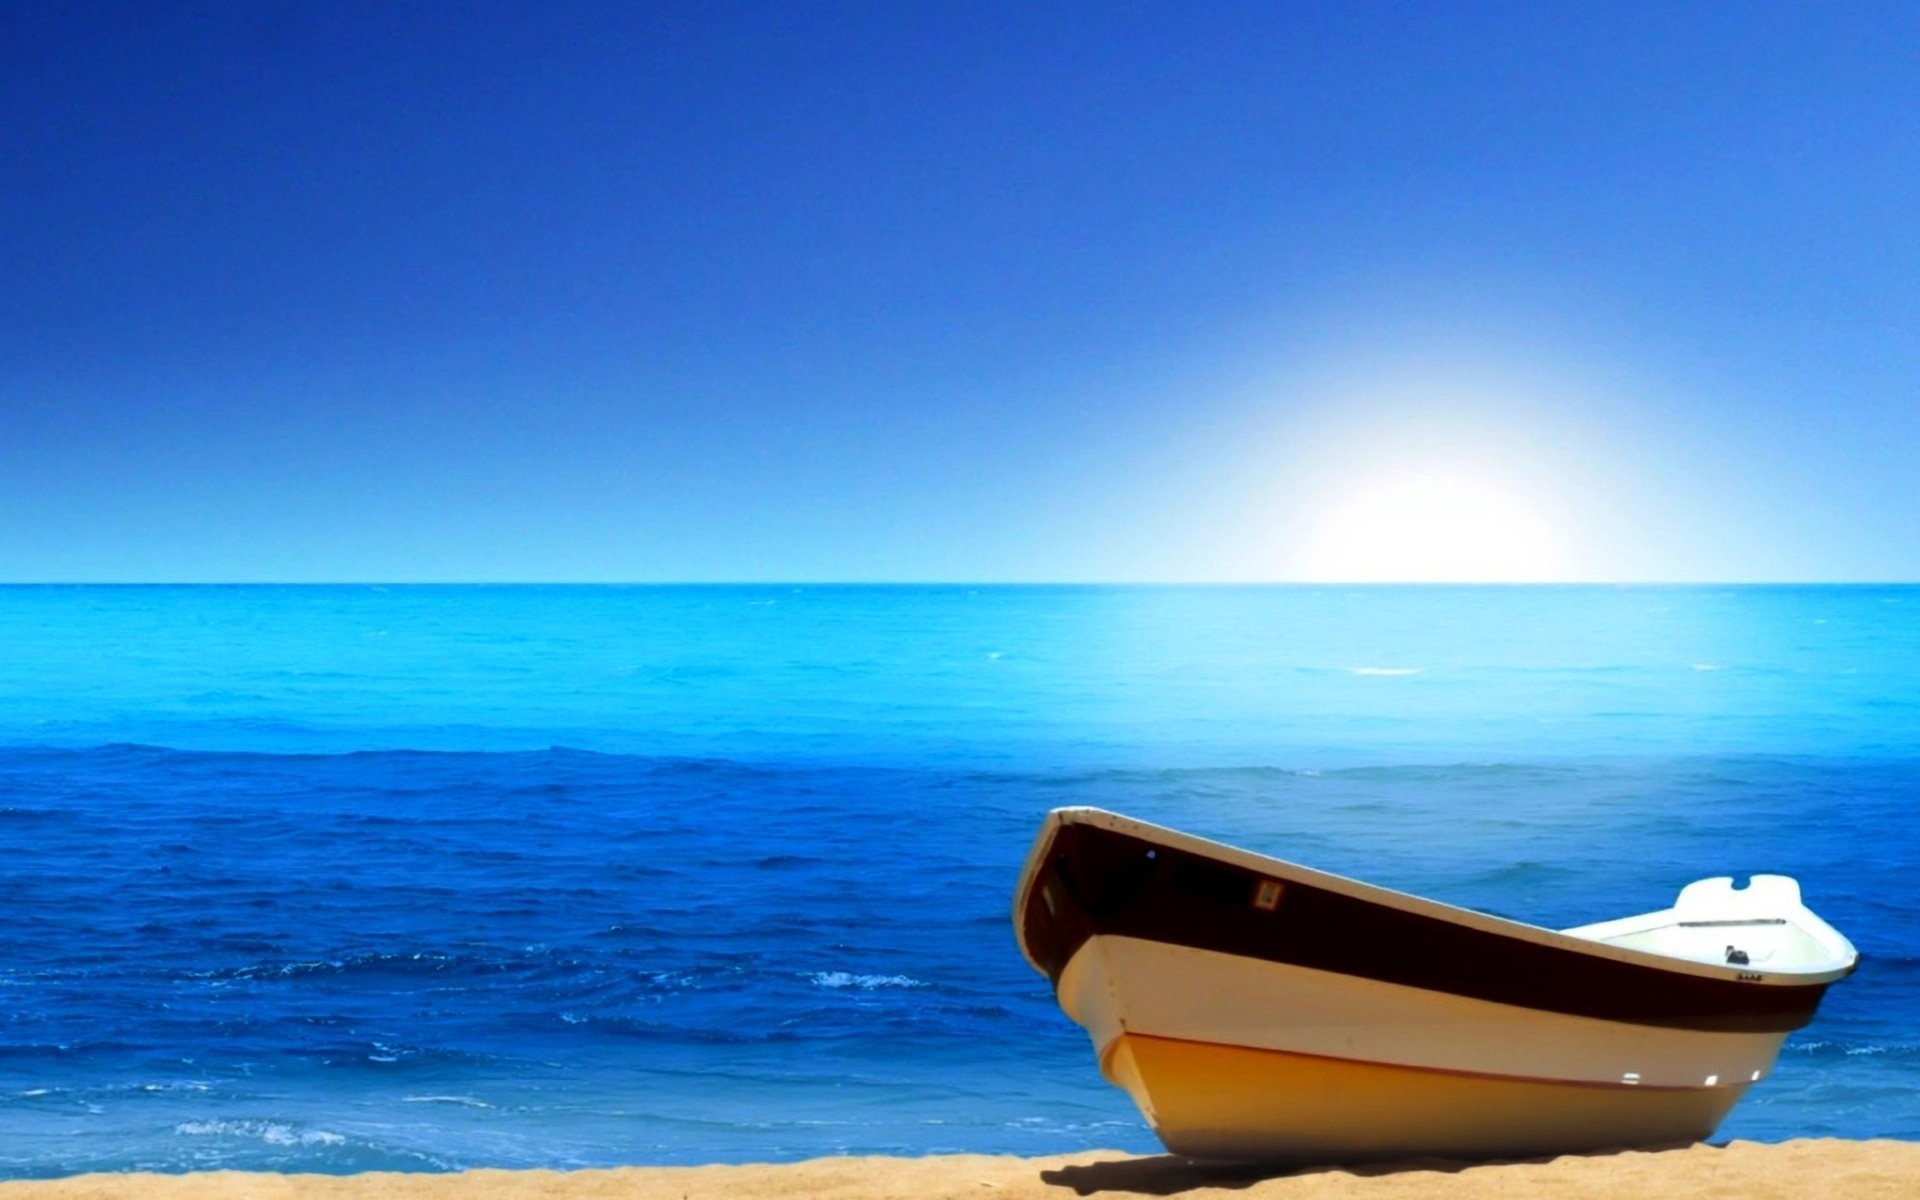 21933 download wallpaper Landscape, Sea, Beach, Boats screensavers and pictures for free